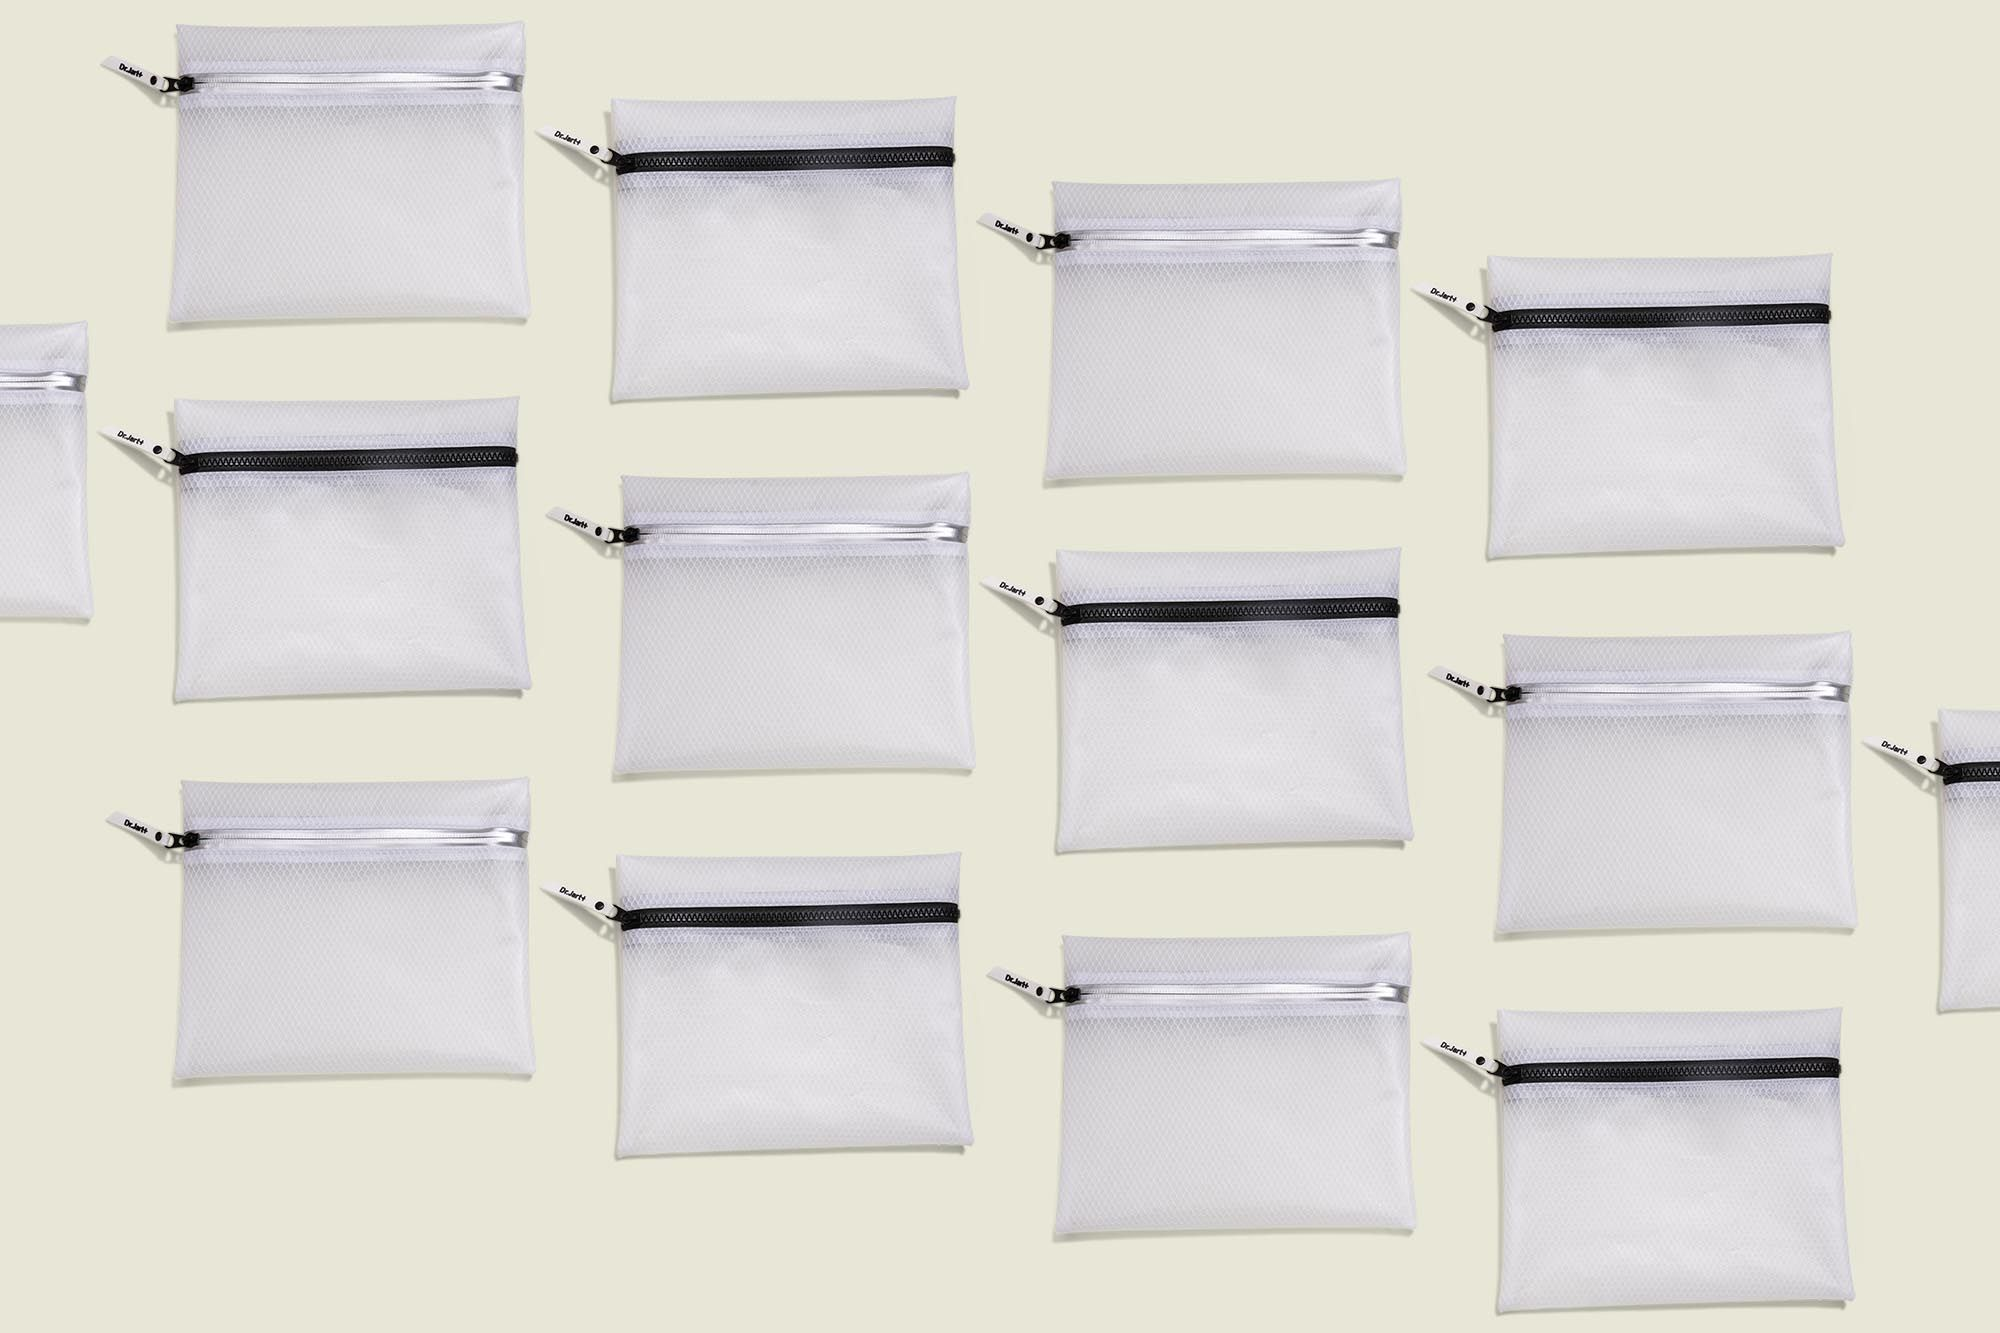 Collection of clear zip pouches